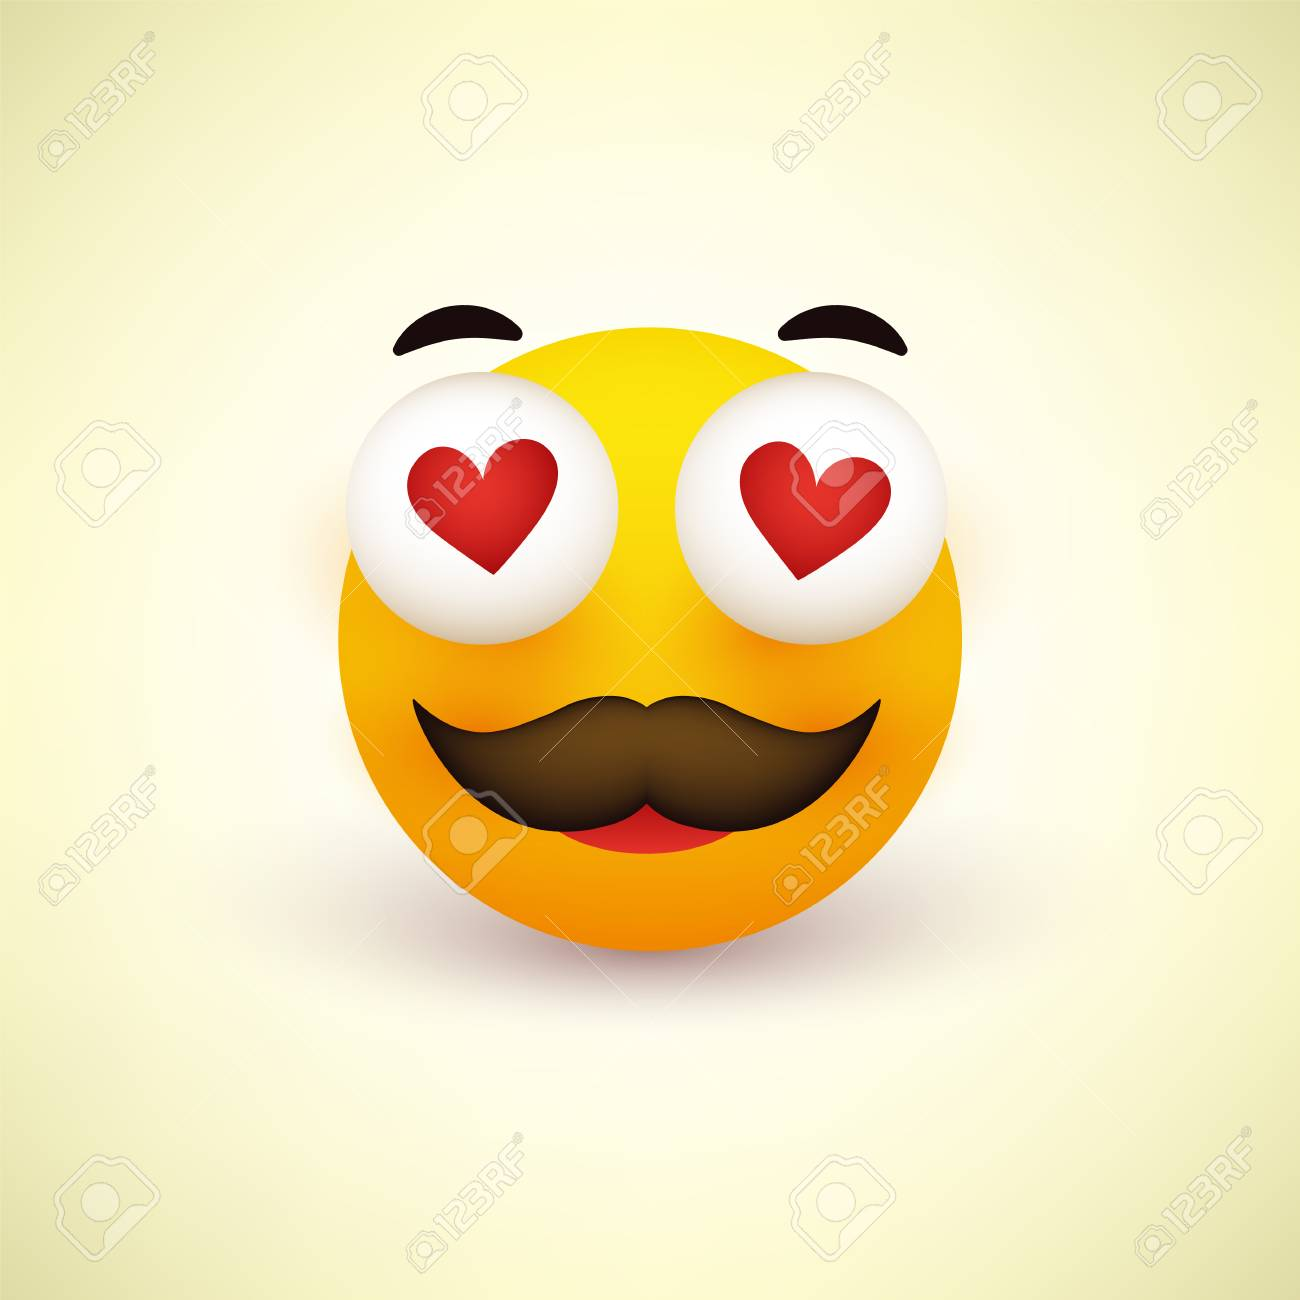 Smiling Face, Emoji, Smiley with Heart Shaped Eyes and Mustache